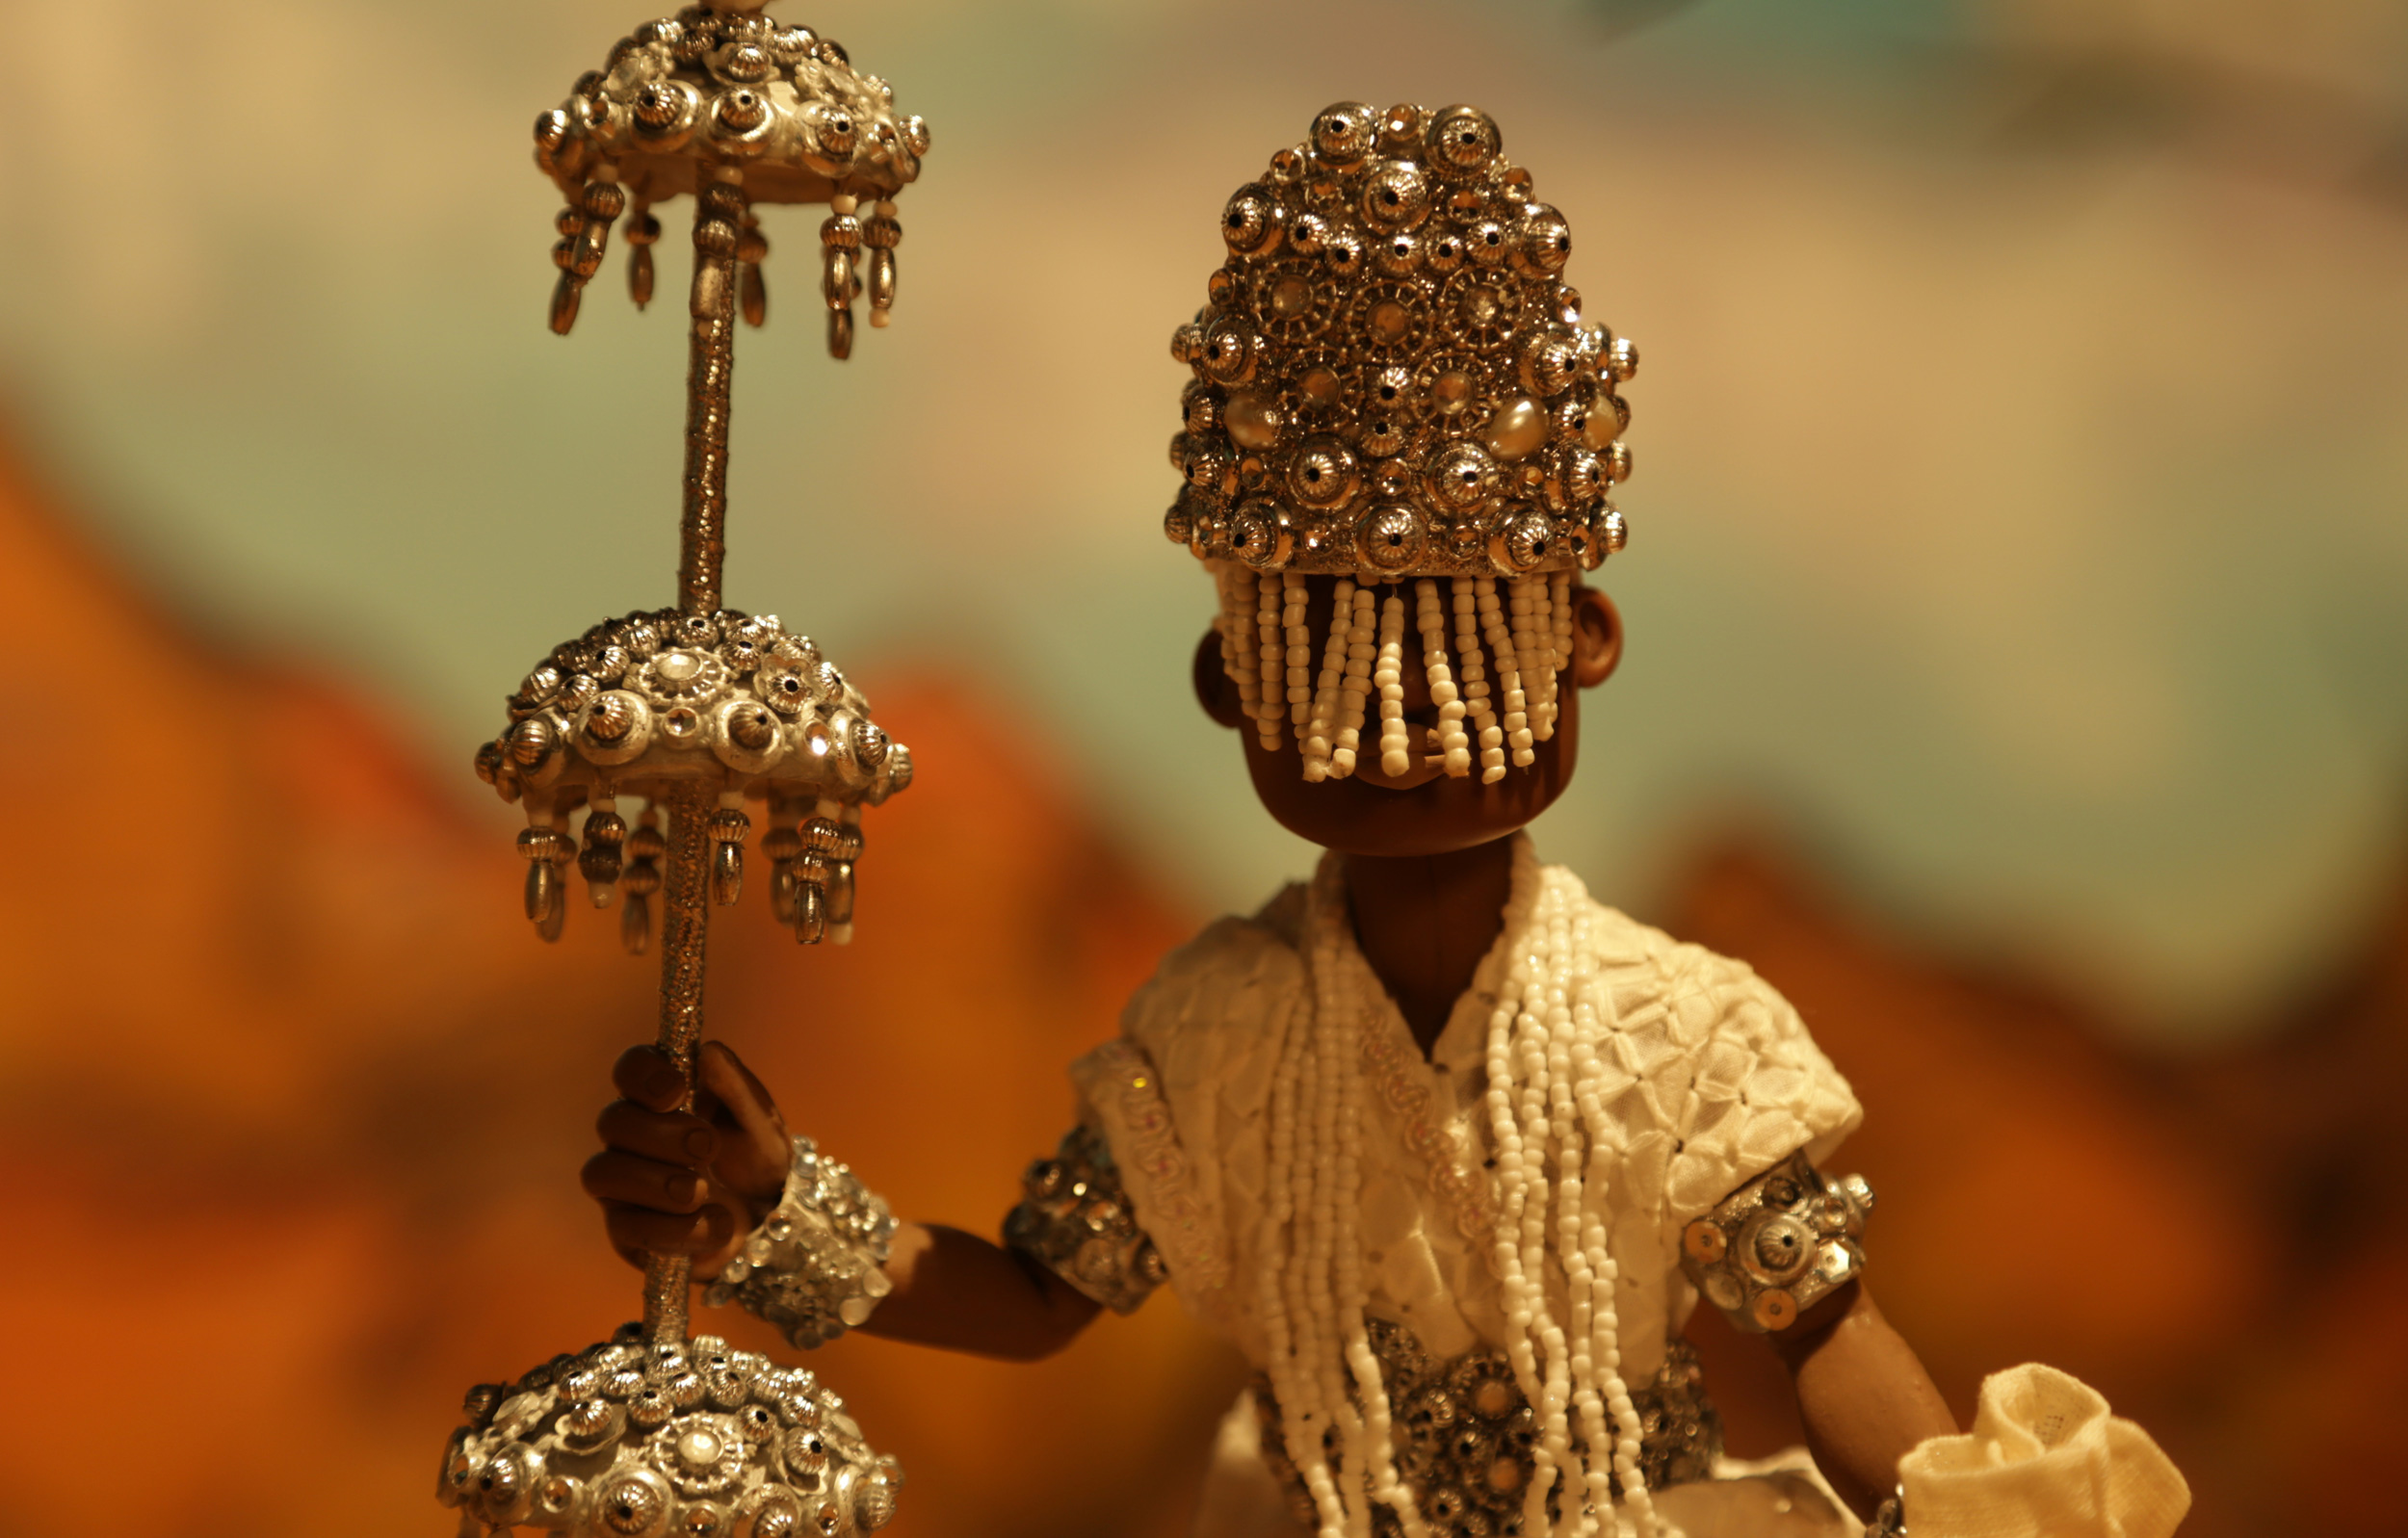 Close-up of Orixá Oxalá. Like in Yorùbáland strings of beads hanging from the crown cover the face.©Christian Carvalho